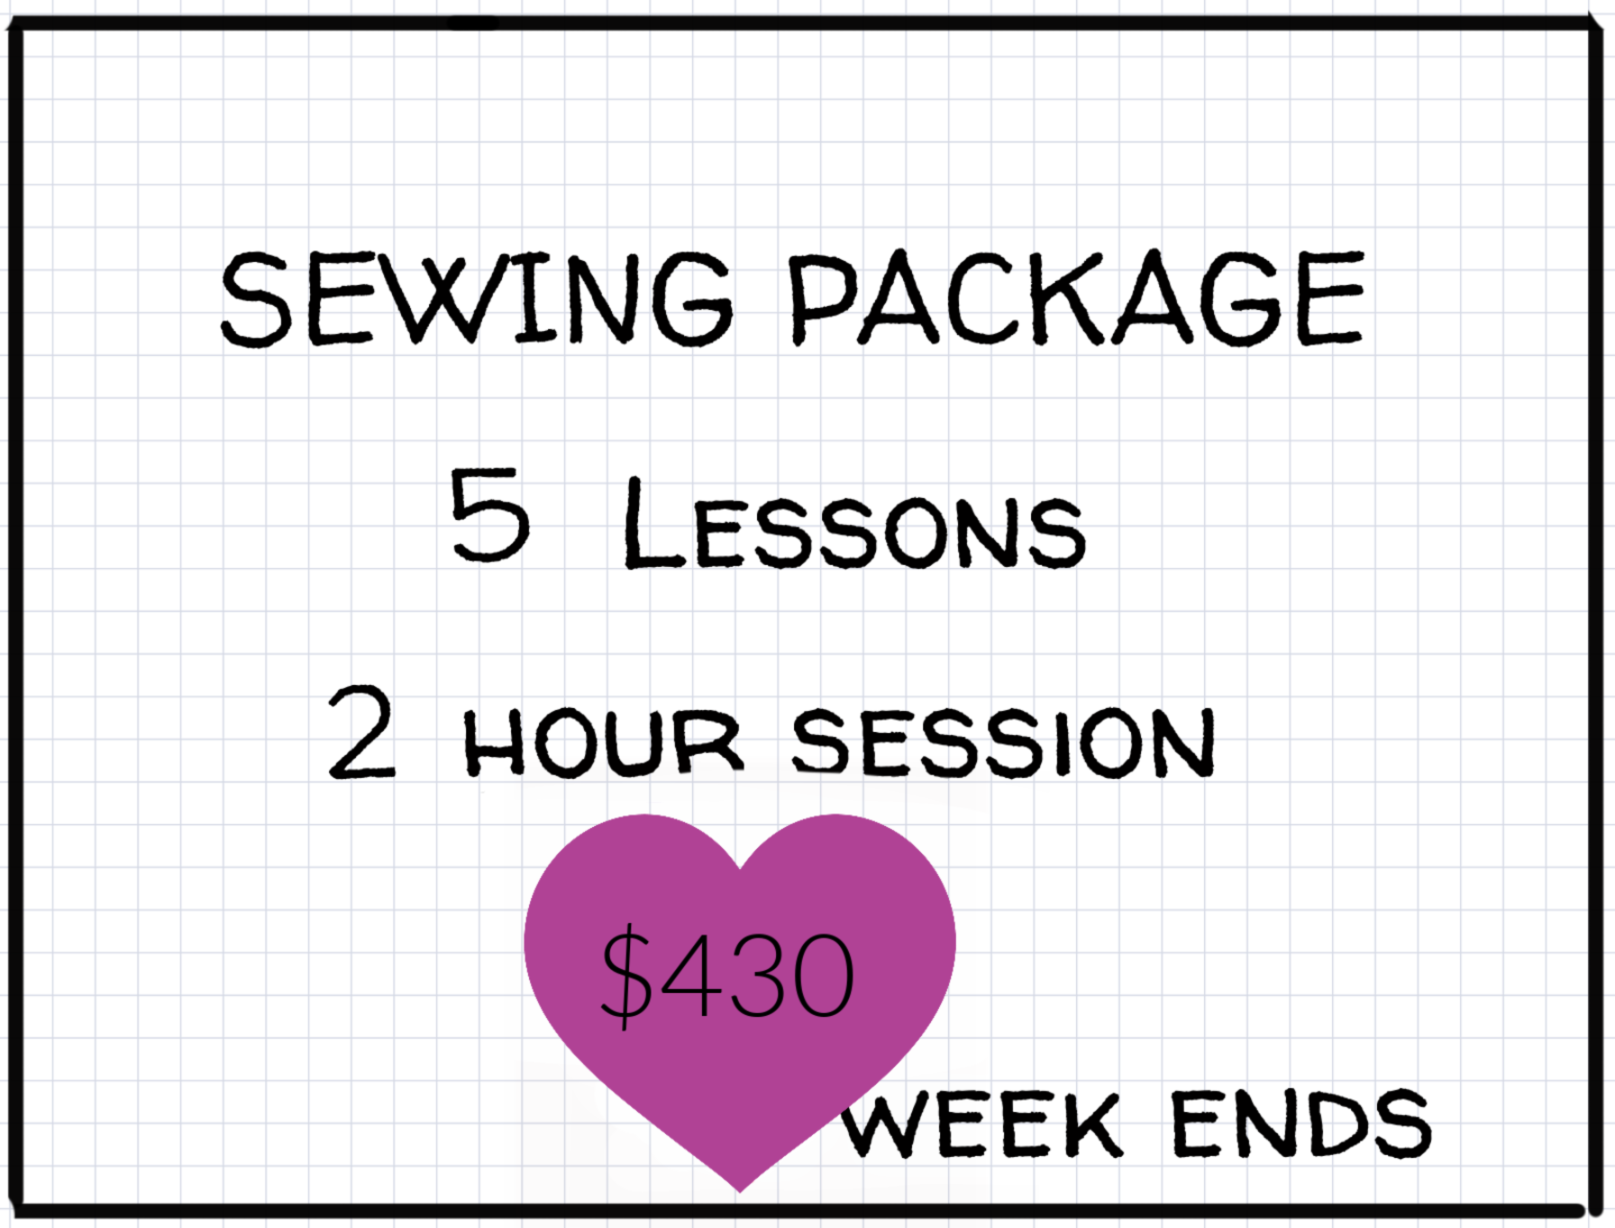 2 Hours Private Lesson Week Days : Package of 5